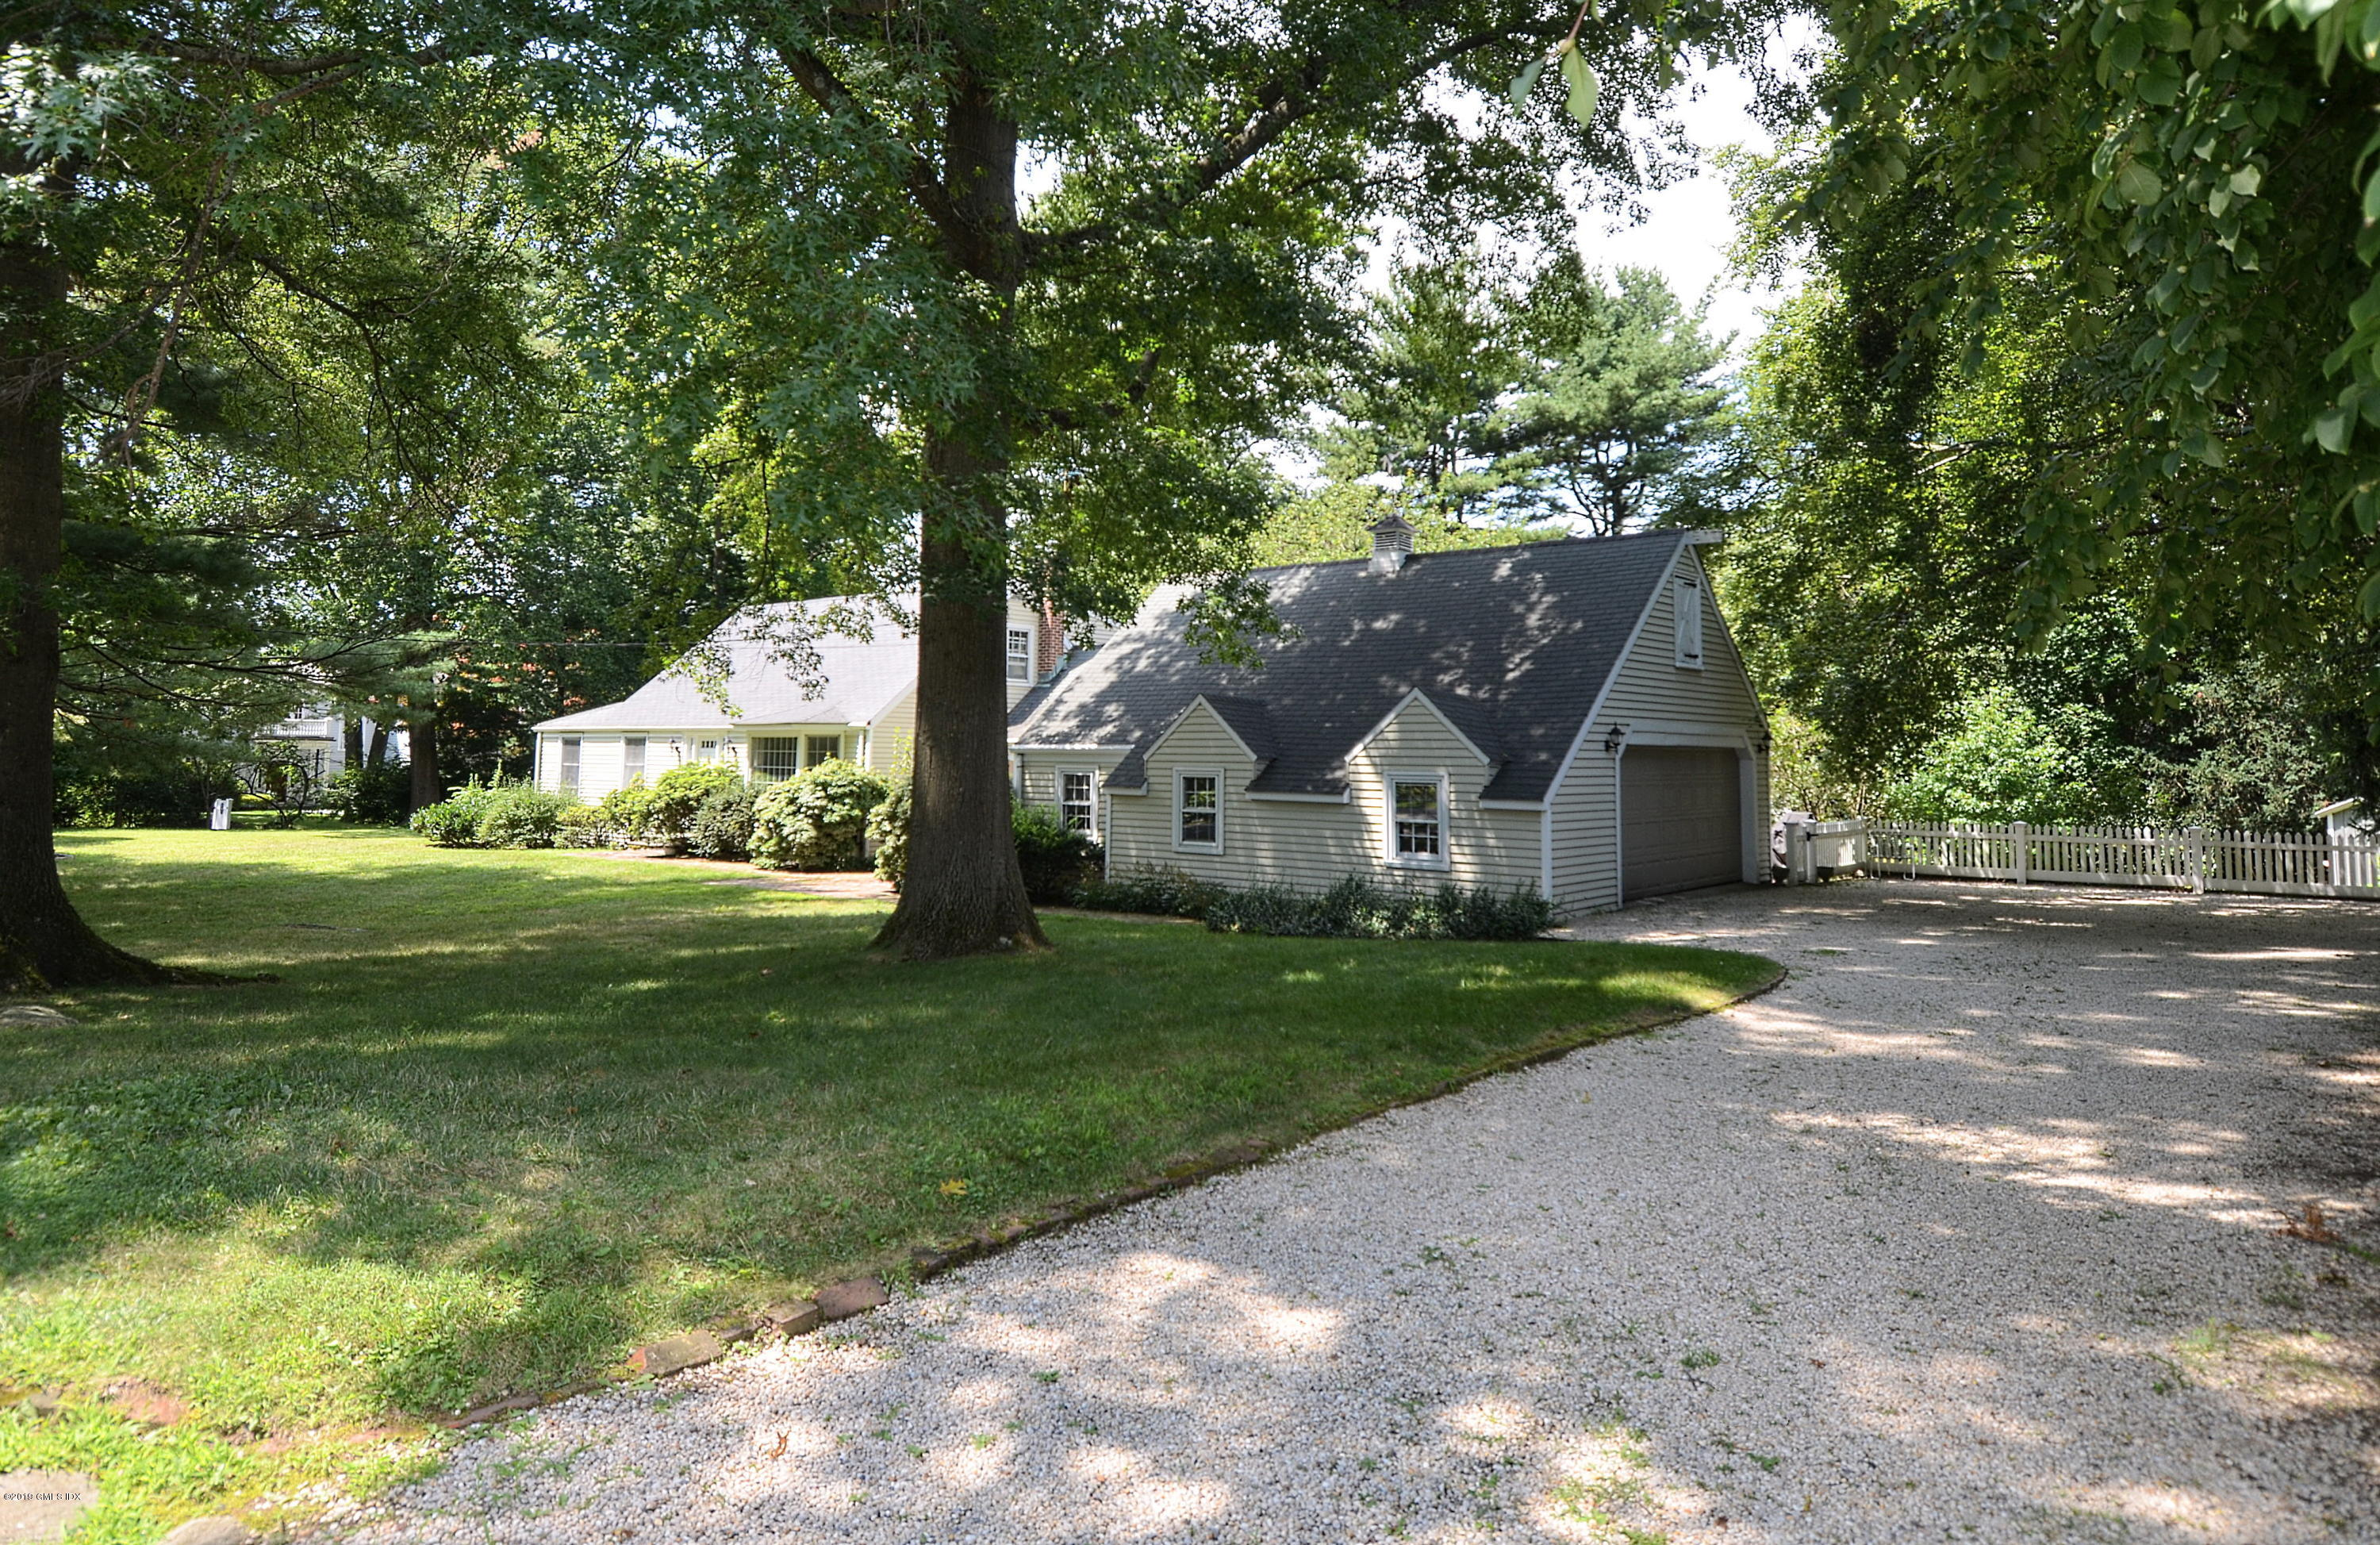 18 Armstrong Lane,Riverside,Connecticut 06878,3 Bedrooms Bedrooms,2 BathroomsBathrooms,Single family,Armstrong,108331